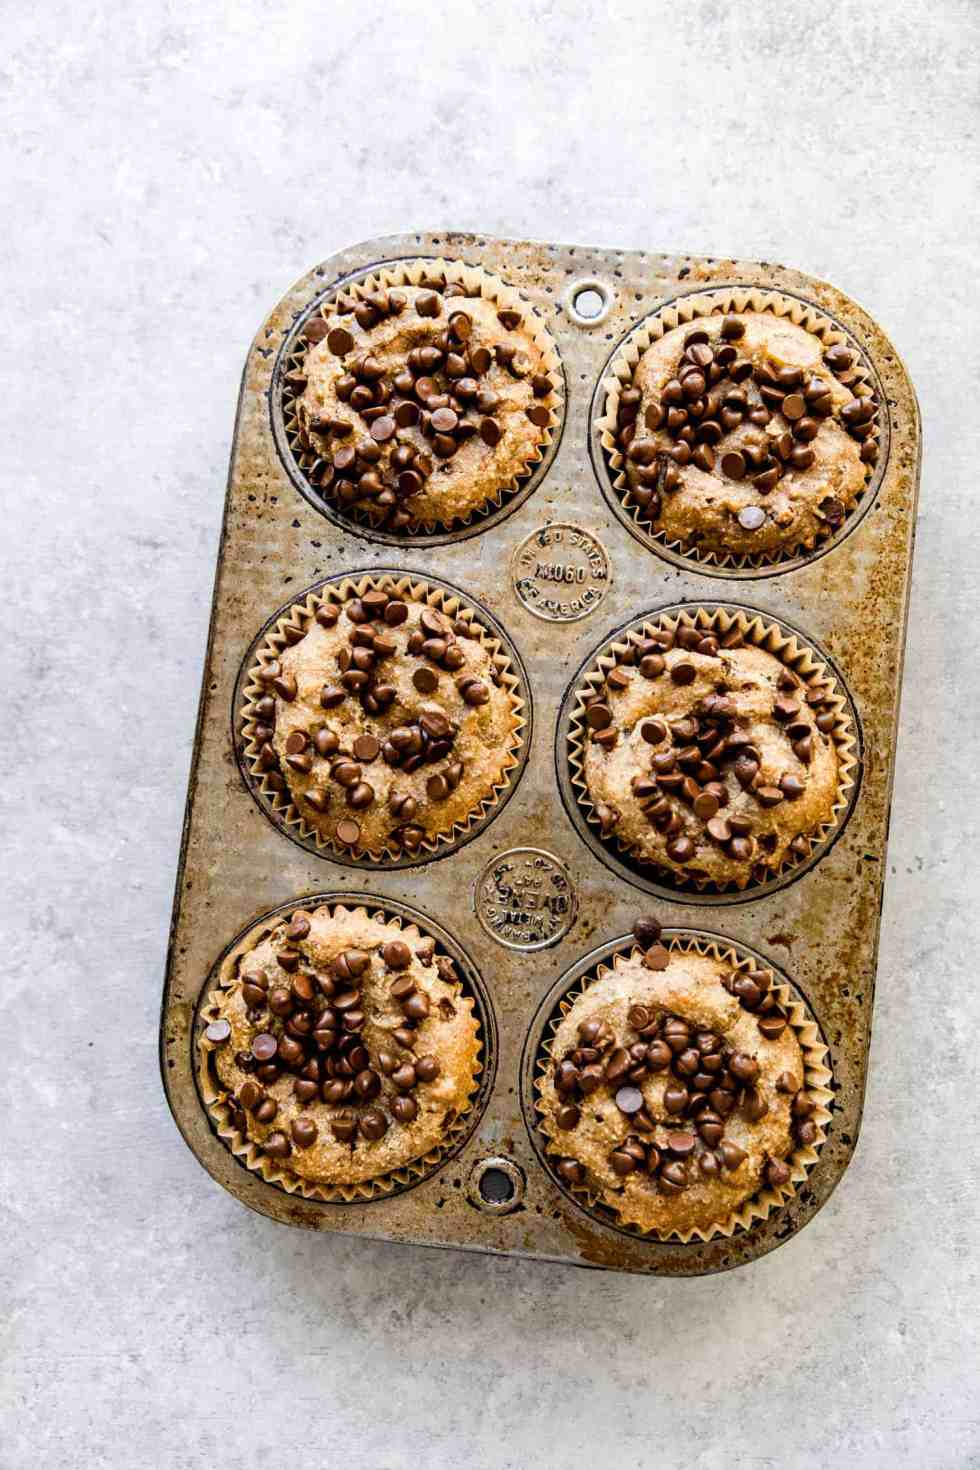 6 banana muffins with chocolate chips on top in a muffin tin